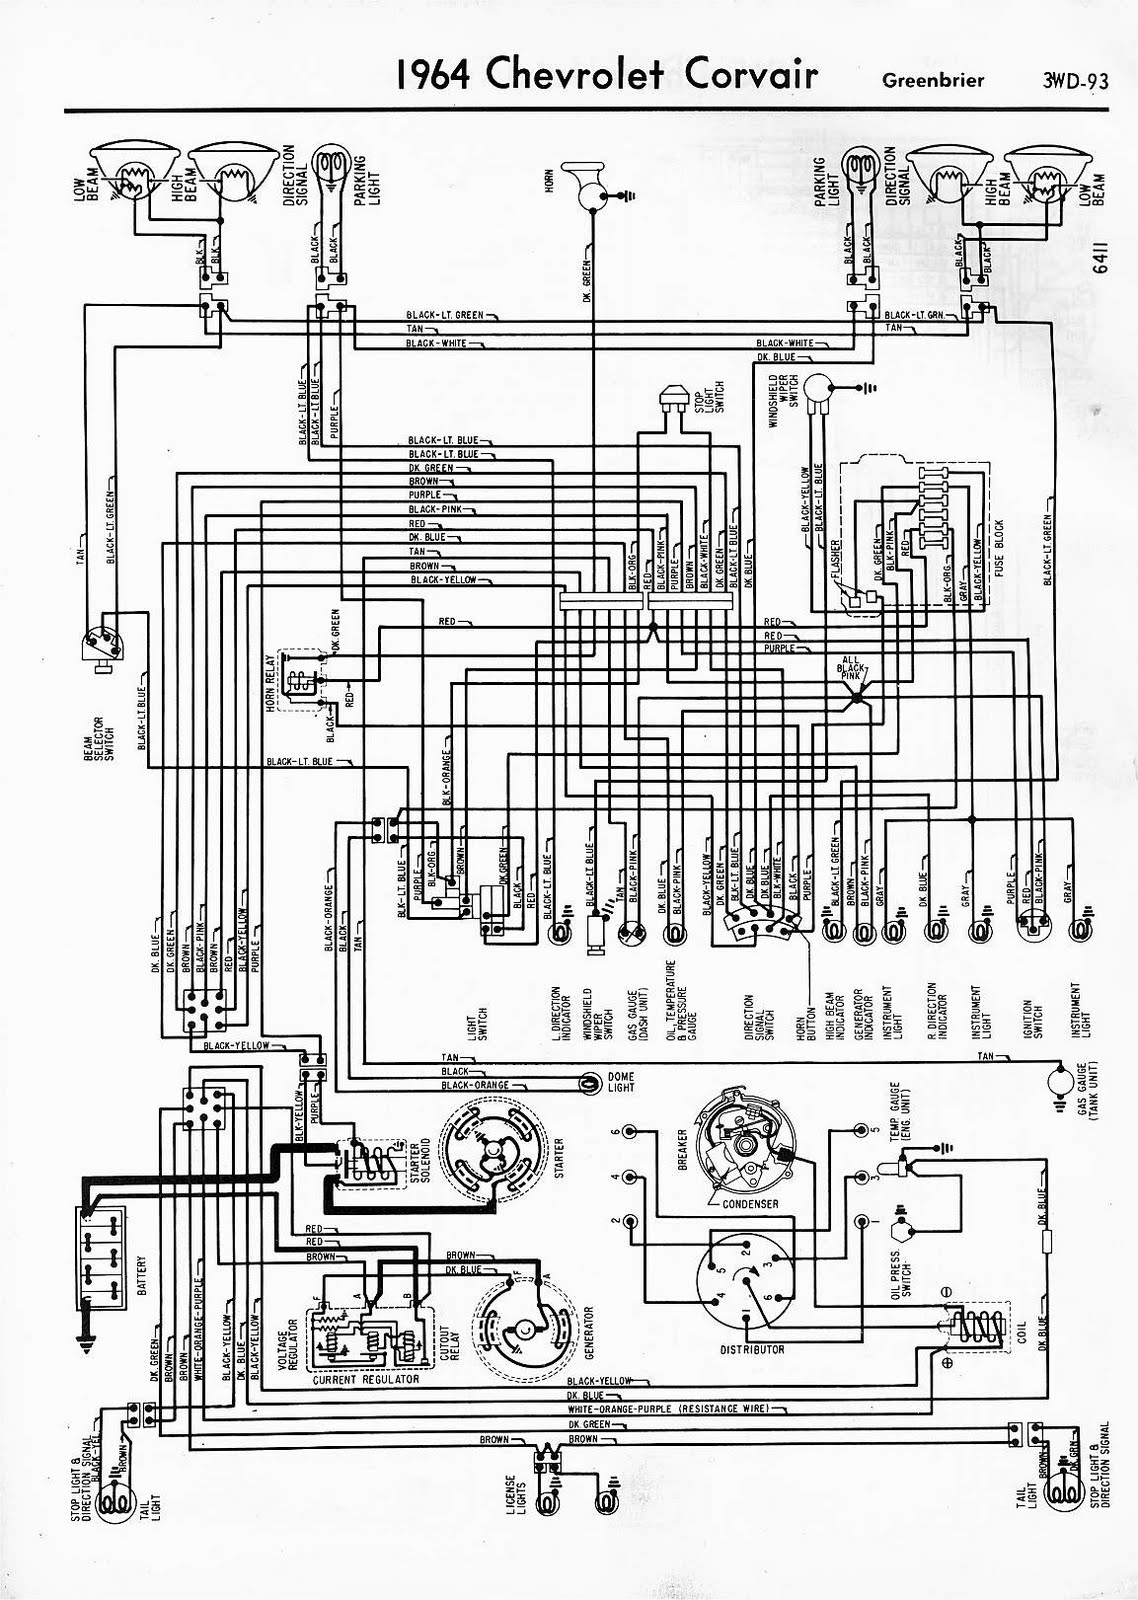 82 Corvette Fuse Panel Diagram Schematics Wiring Diagrams 1964 Box Free Auto Chevrolet Corvair 1968 1982